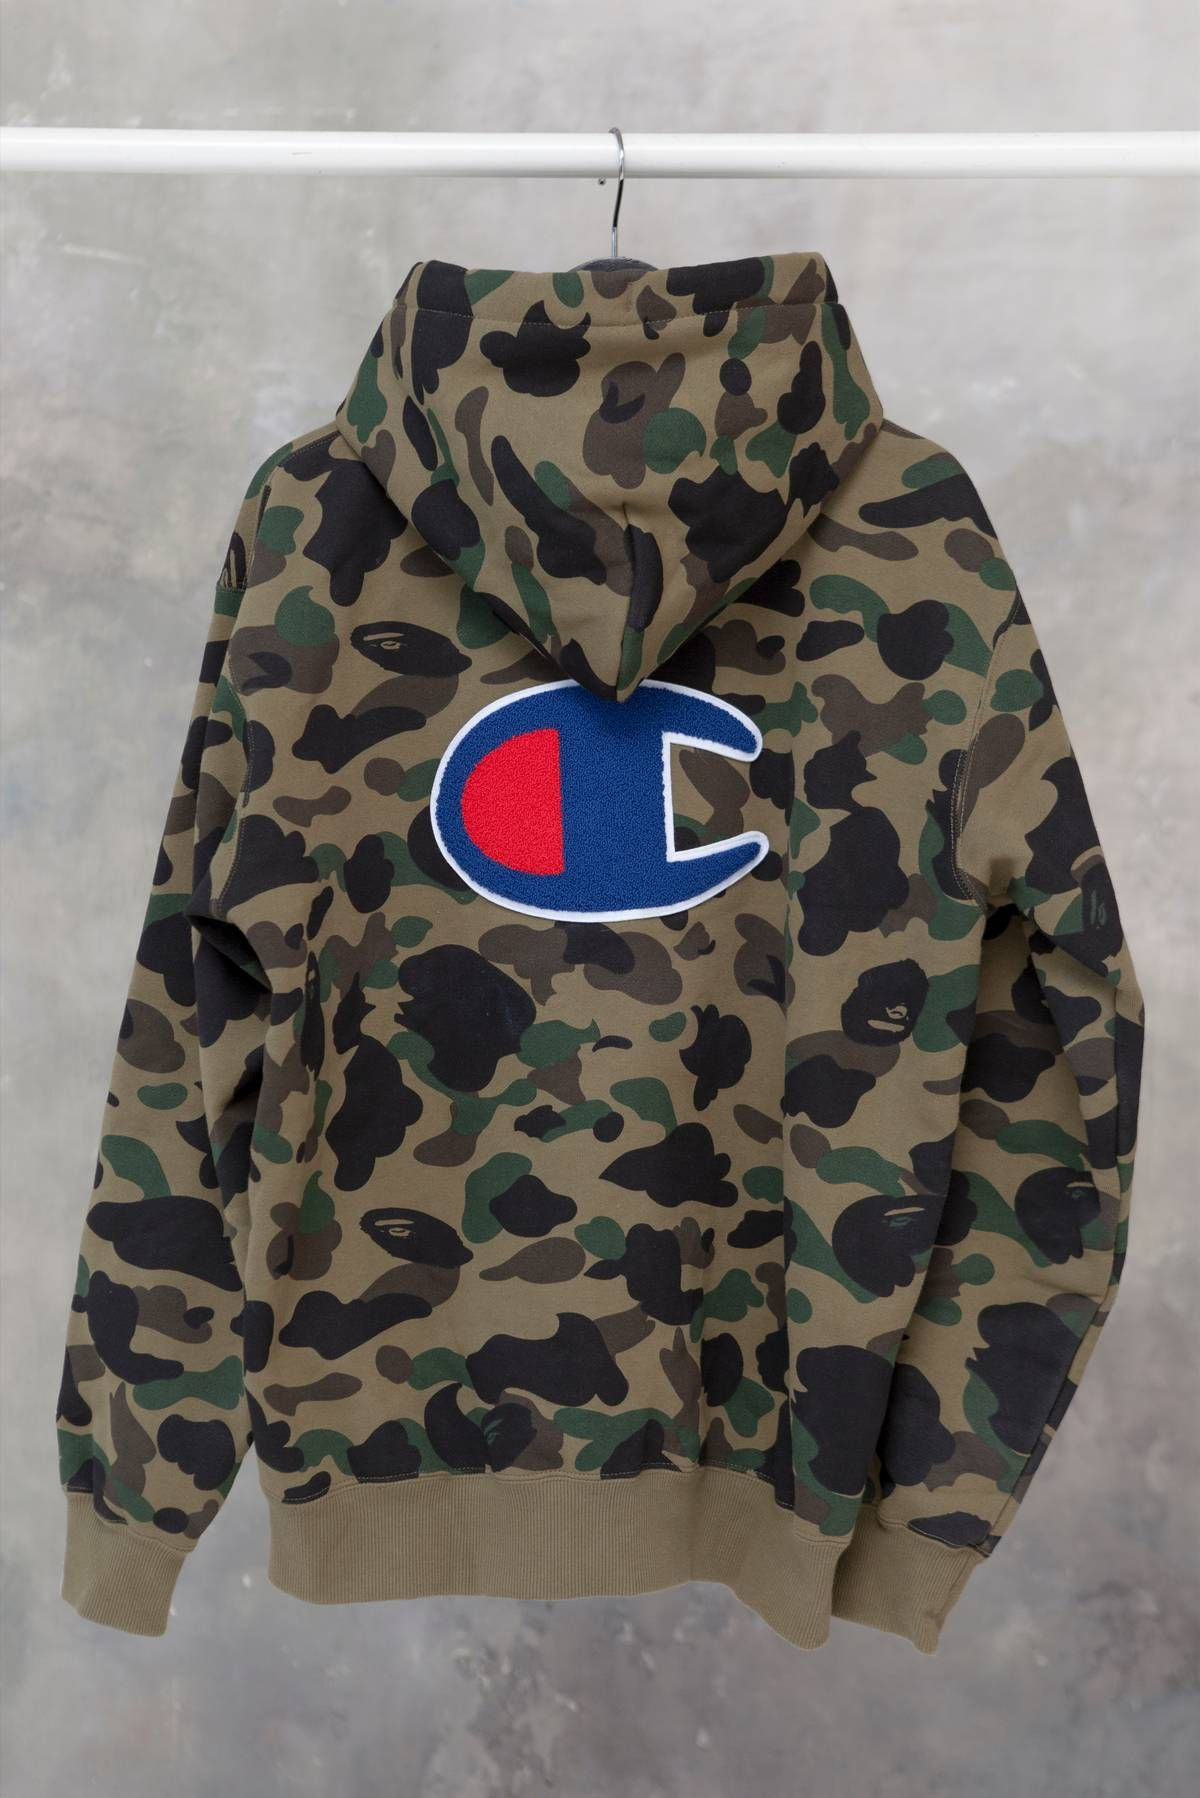 96f91287faa4 Bape A Bathing Ape Bape x Champion 1st Camo Zip Hoodie 16FW Size xl -  Sweatshirts   Hoodies for Sale - Grailed